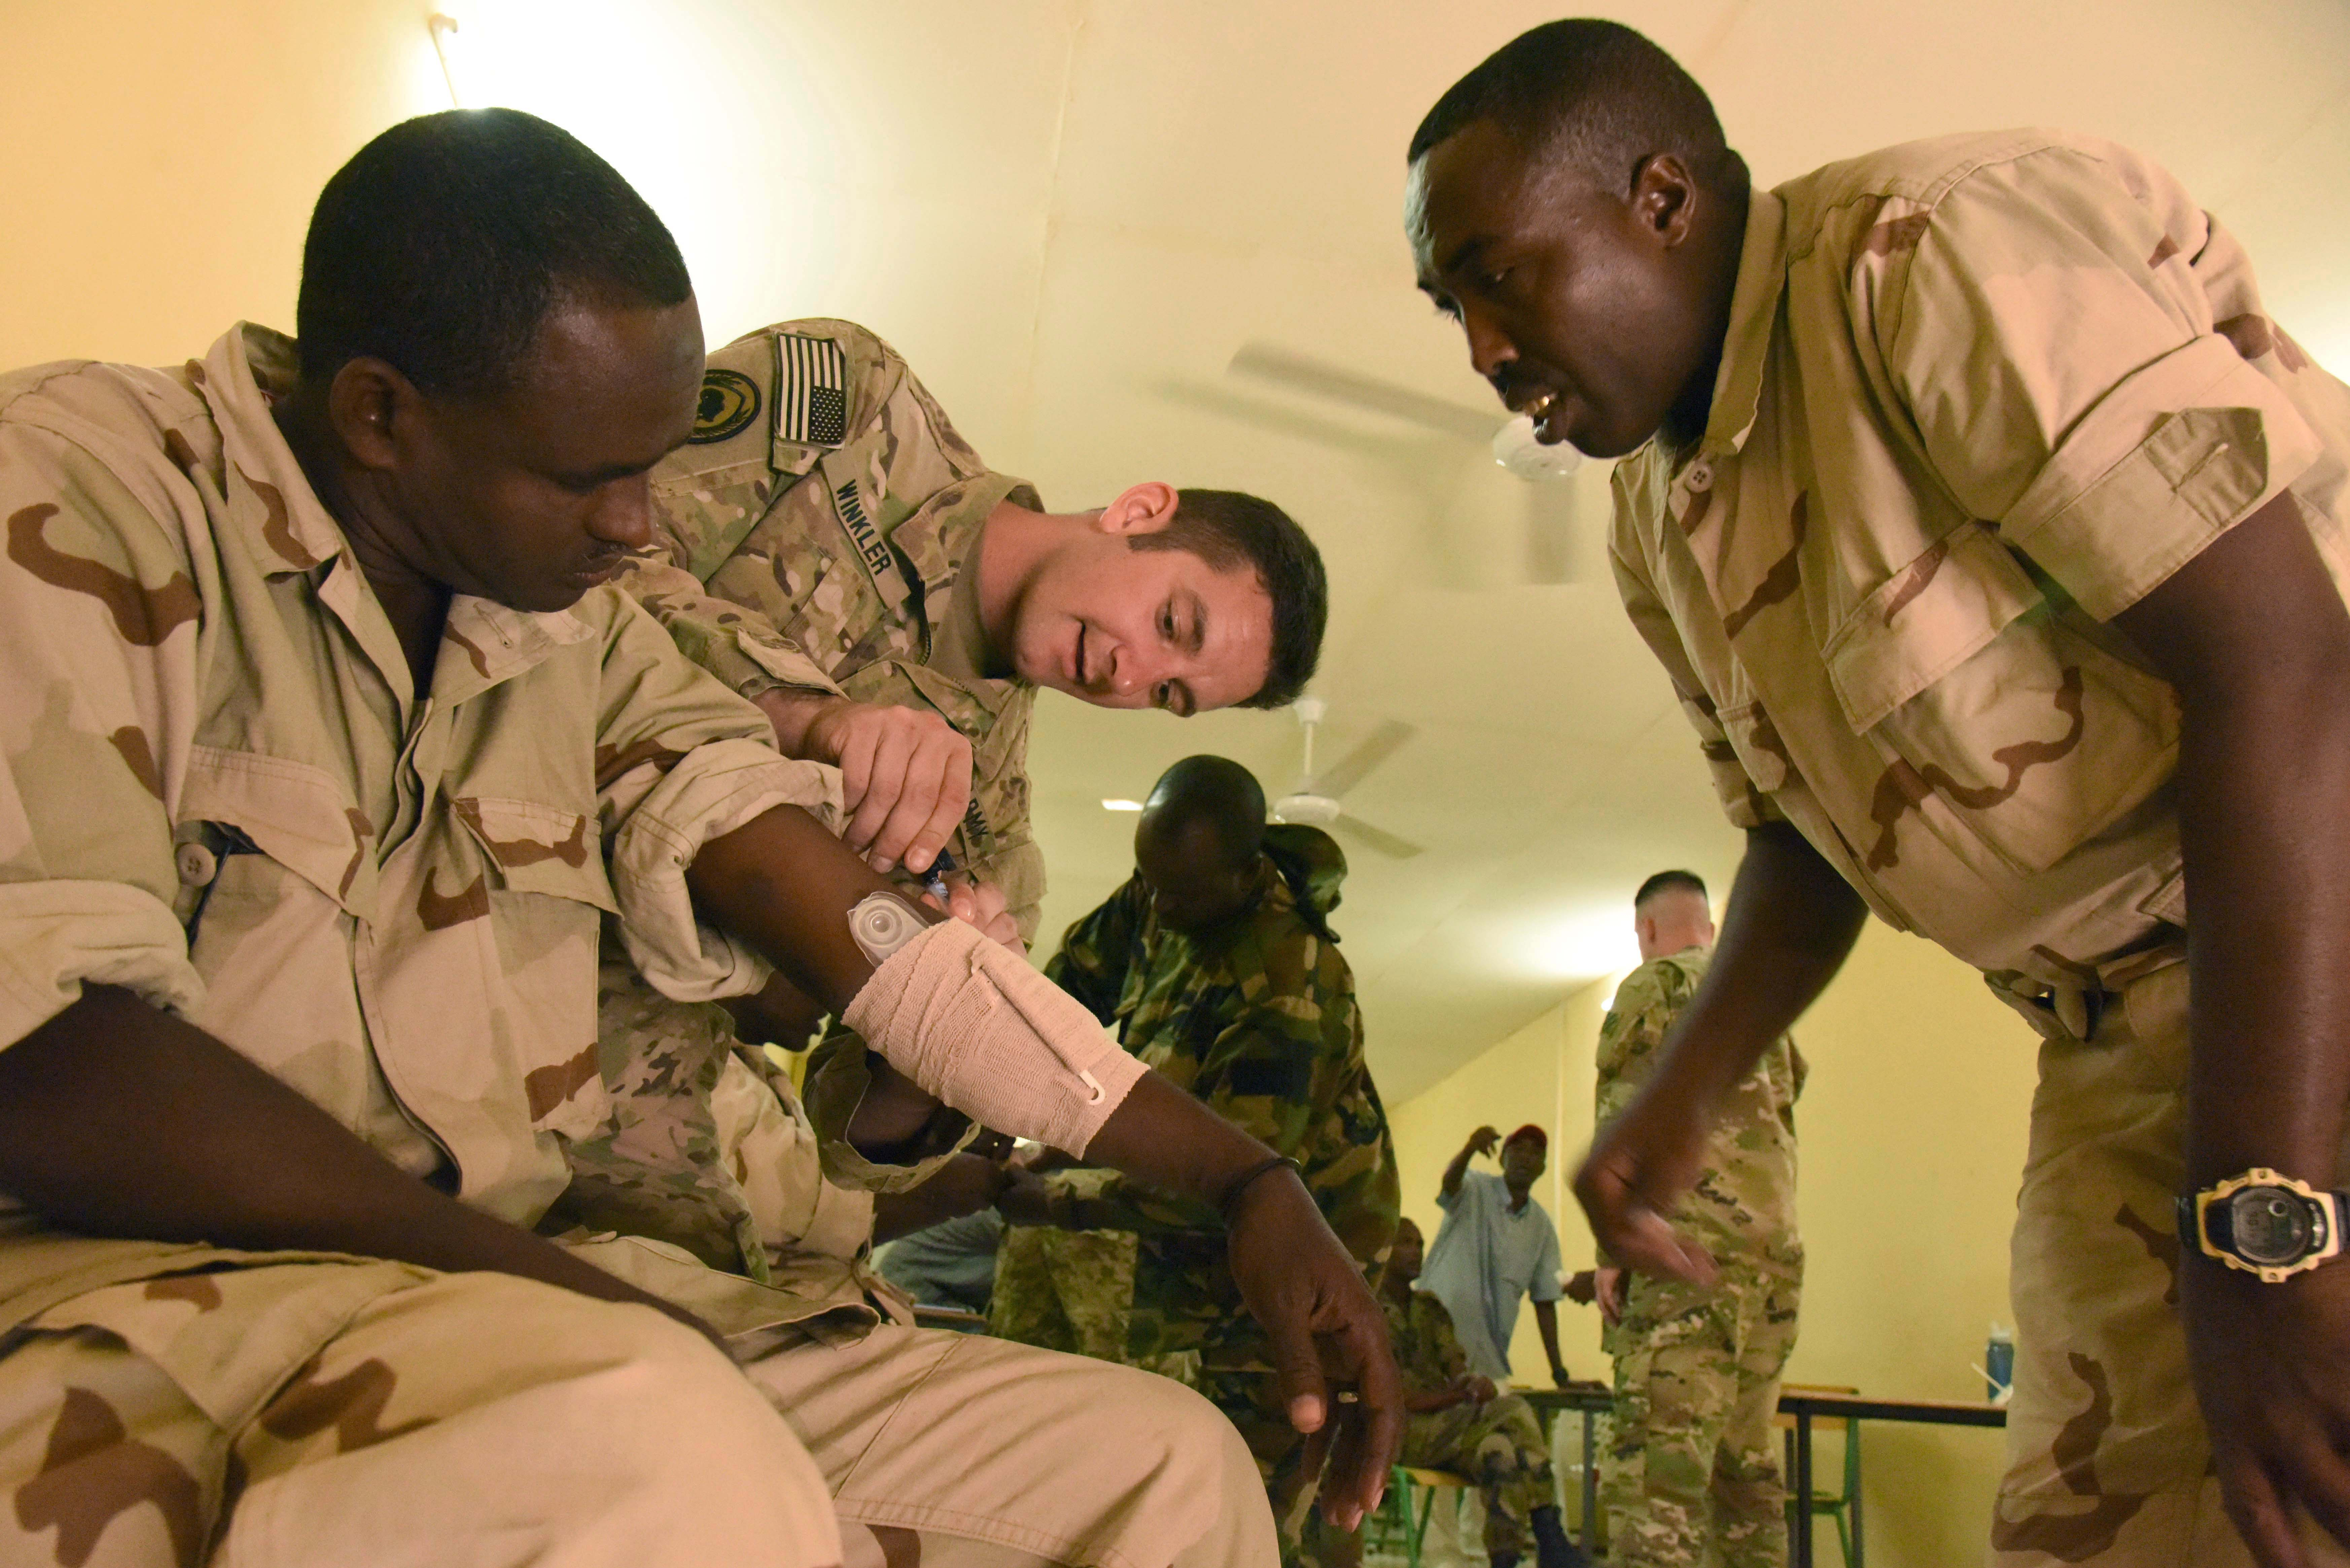 U.S. Army Sgt. Scott Winkler, 6th Squadron, 8th Cavalry Regiment combat medic, teaches Djiboutian Armed Forces (FAD) soldiers how to use a pressure dressing during a Combat Lifesaver Course at the Central Management of Materials and Engineering Services, Djibouti, Mar. 5, 2016. The FAD followed the same five-day course taught to U.S. Soldiers to prepare the FAD for deployment. (U.S. Air Force photo by Staff Sgt. Victoria Sneed)